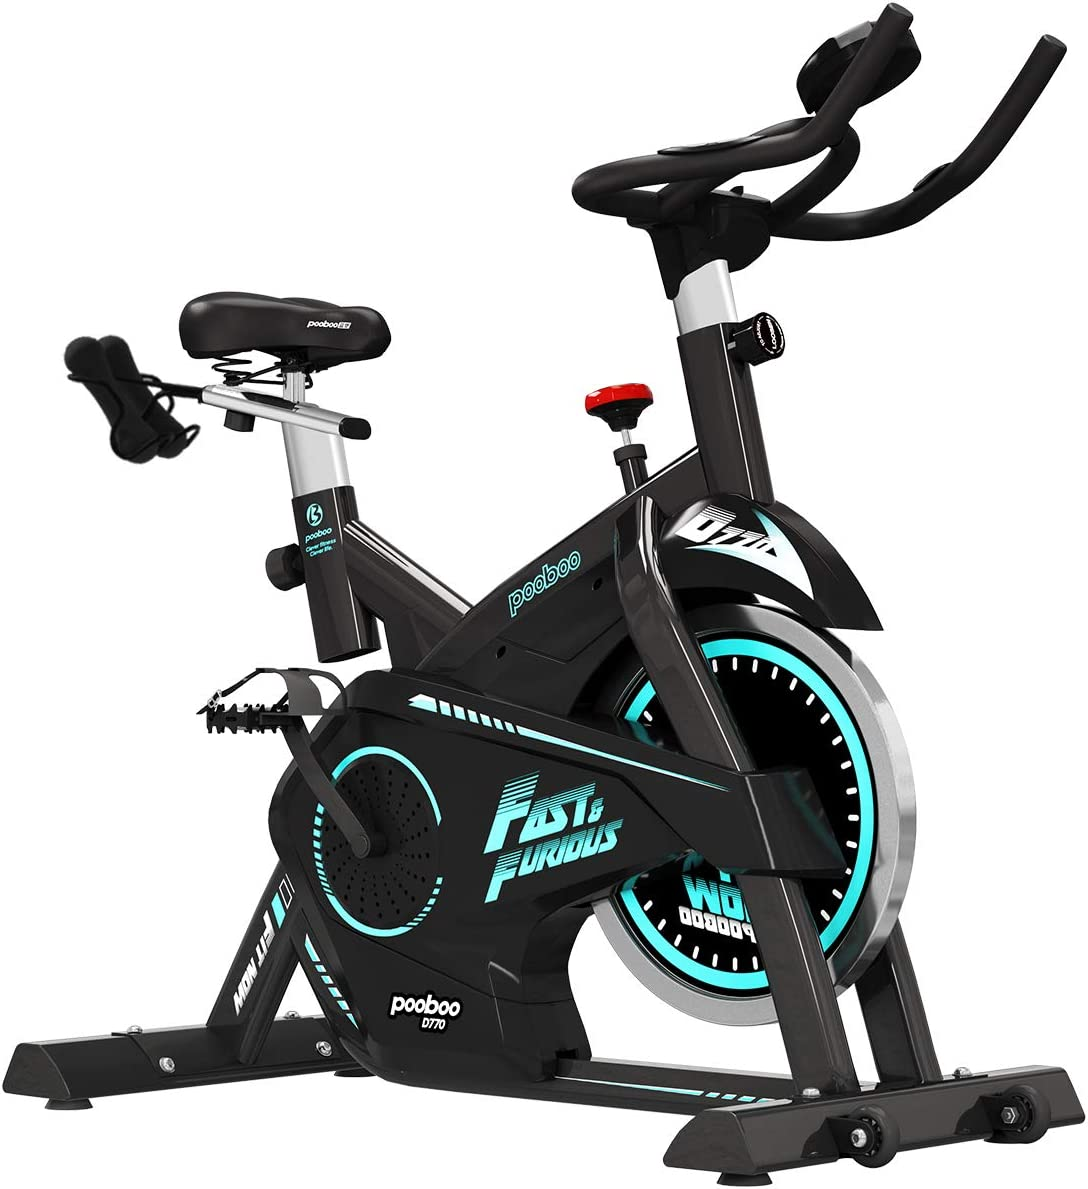 pooboo Pro Indoor Cycling Bike, Belt Drive Exercise Bike,Stationary Exercise Bicycle LED Display Heart Pulse Trainer Bike Flywheel Smooth Quiet